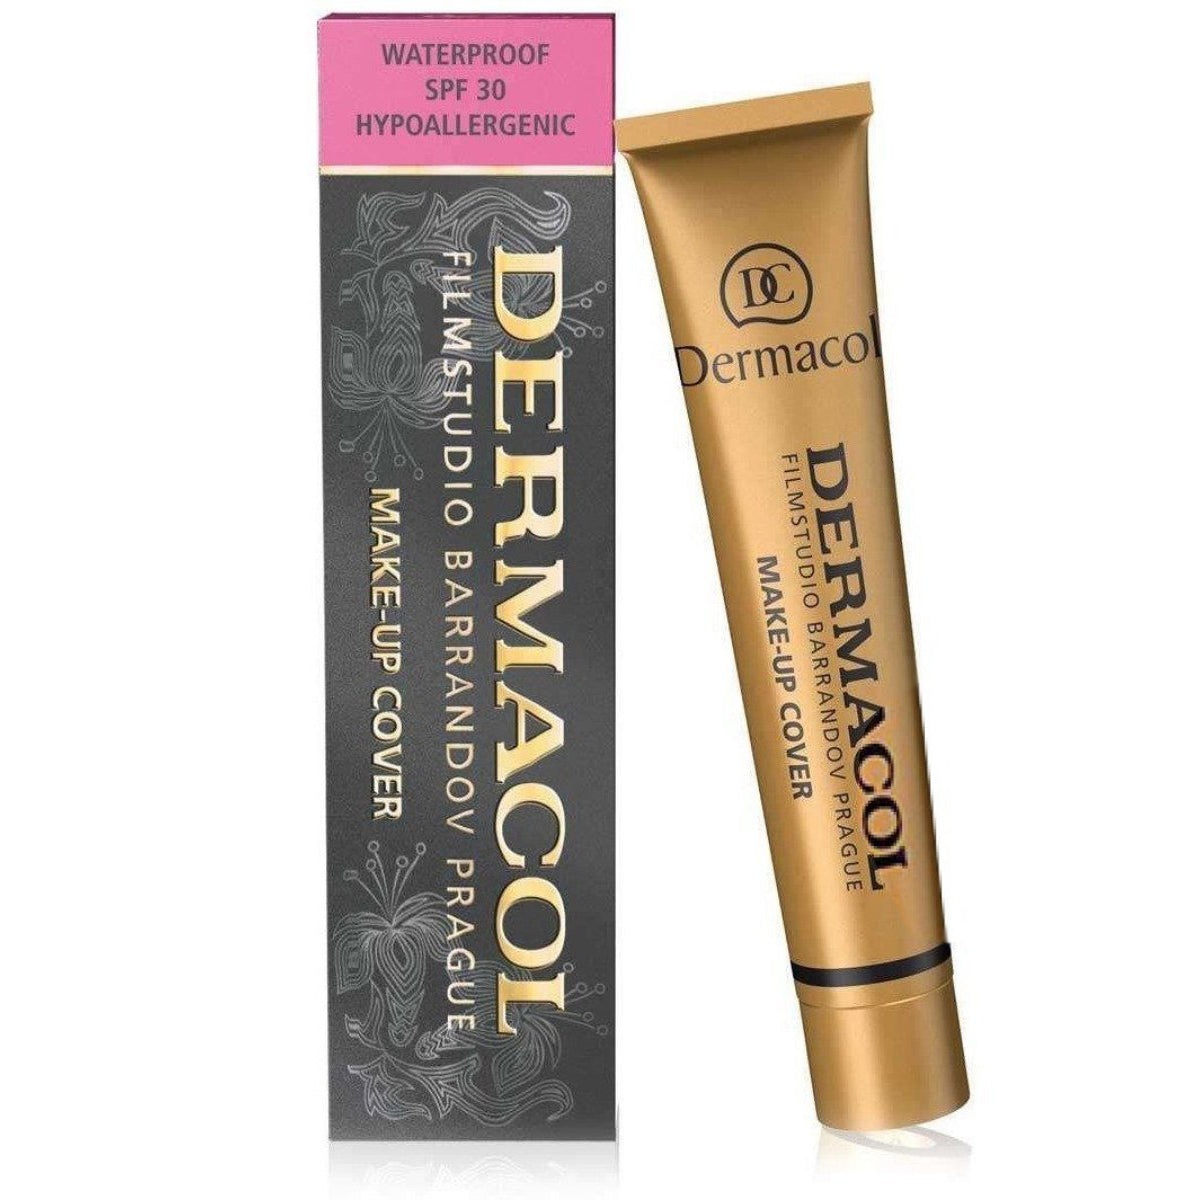 Dermacol MAKE-UP COVER (Various Shades) - 224 DARK ORANGE-BROWN WITH GOLDEN UNDERTONE | Cosmetics Diary